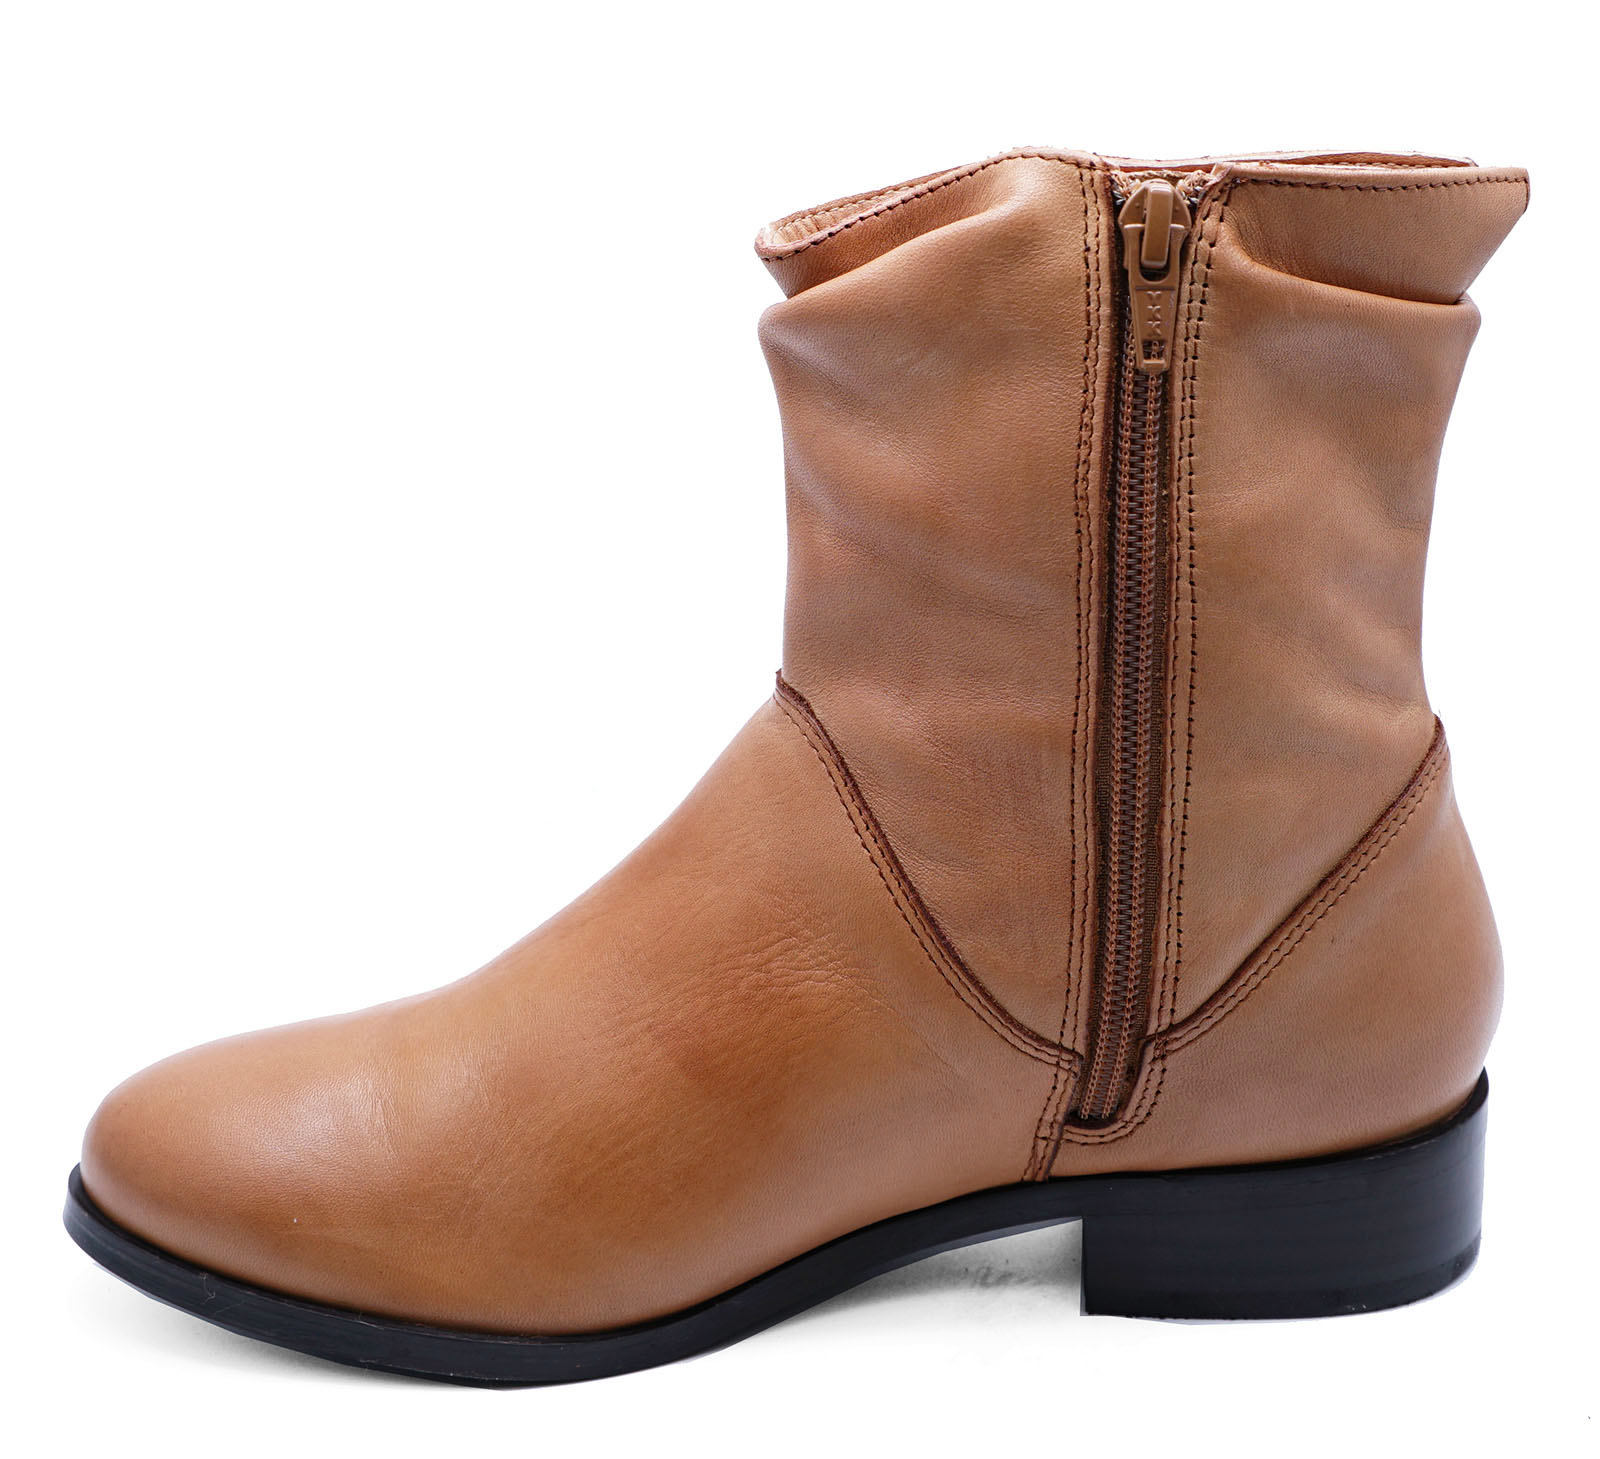 LADIES-FLAT-GENUINE-LEATHER-TAN-ZIP-UP-ANKLE-CALF-BOOTS-COMFY-SHOES-SIZES-2-9 thumbnail 13